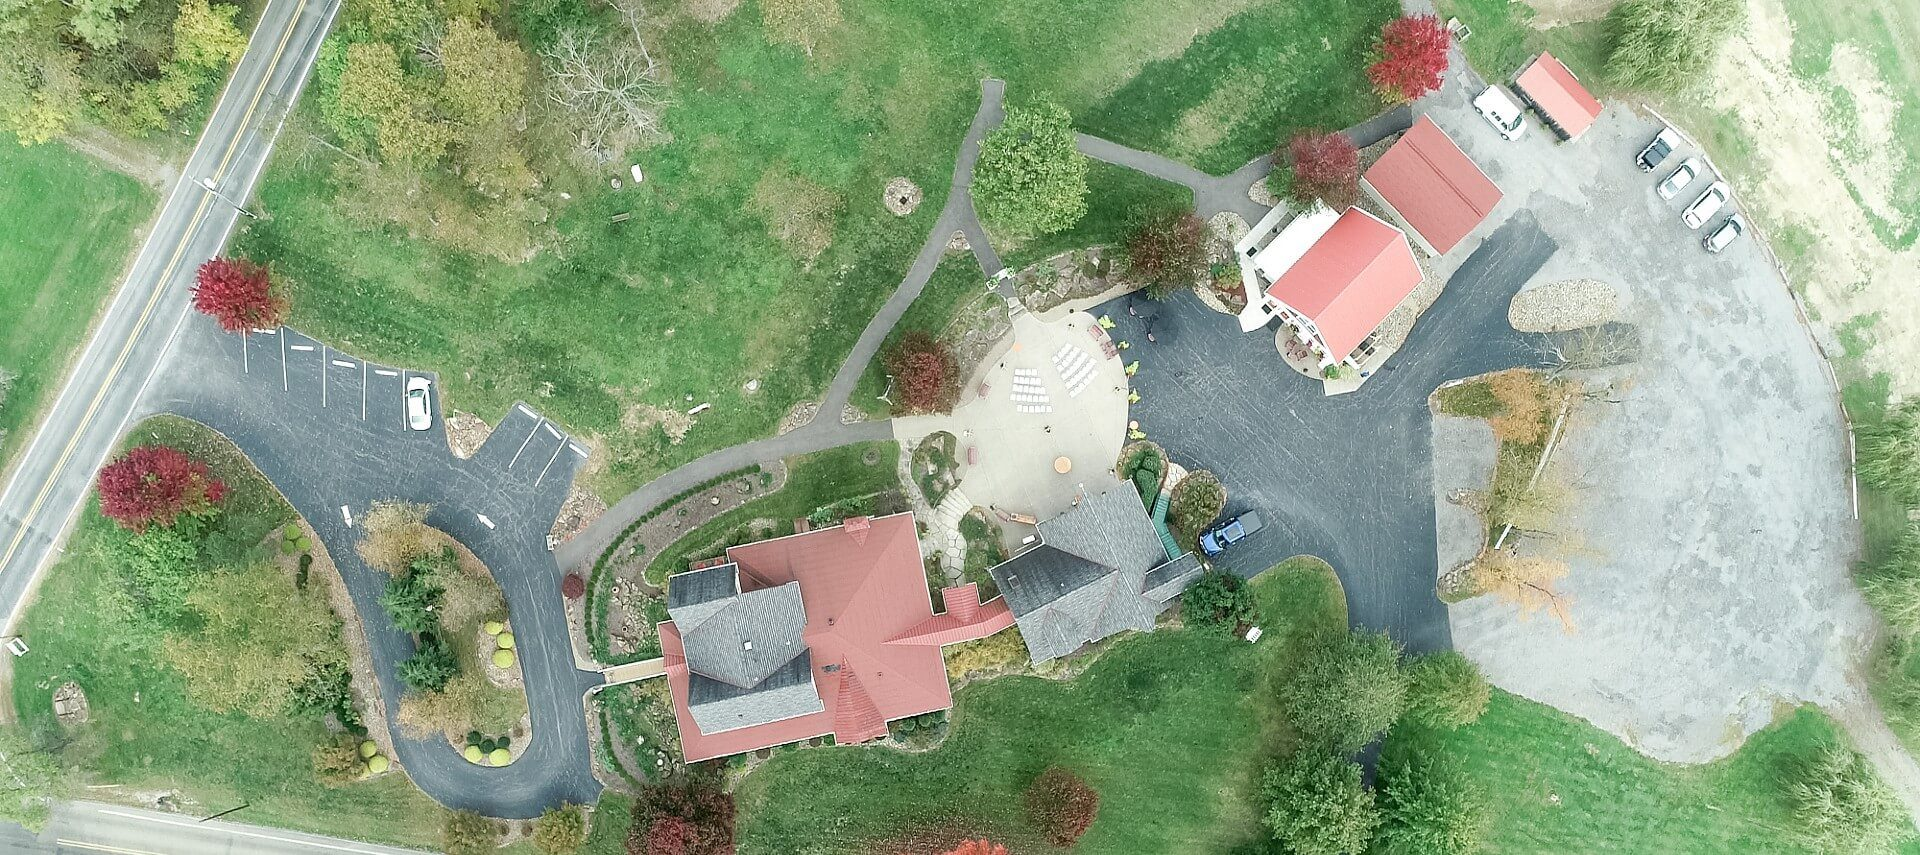 Overhead aerial image of home with multiple outbuildings, two parking lots and expansive lawn areas